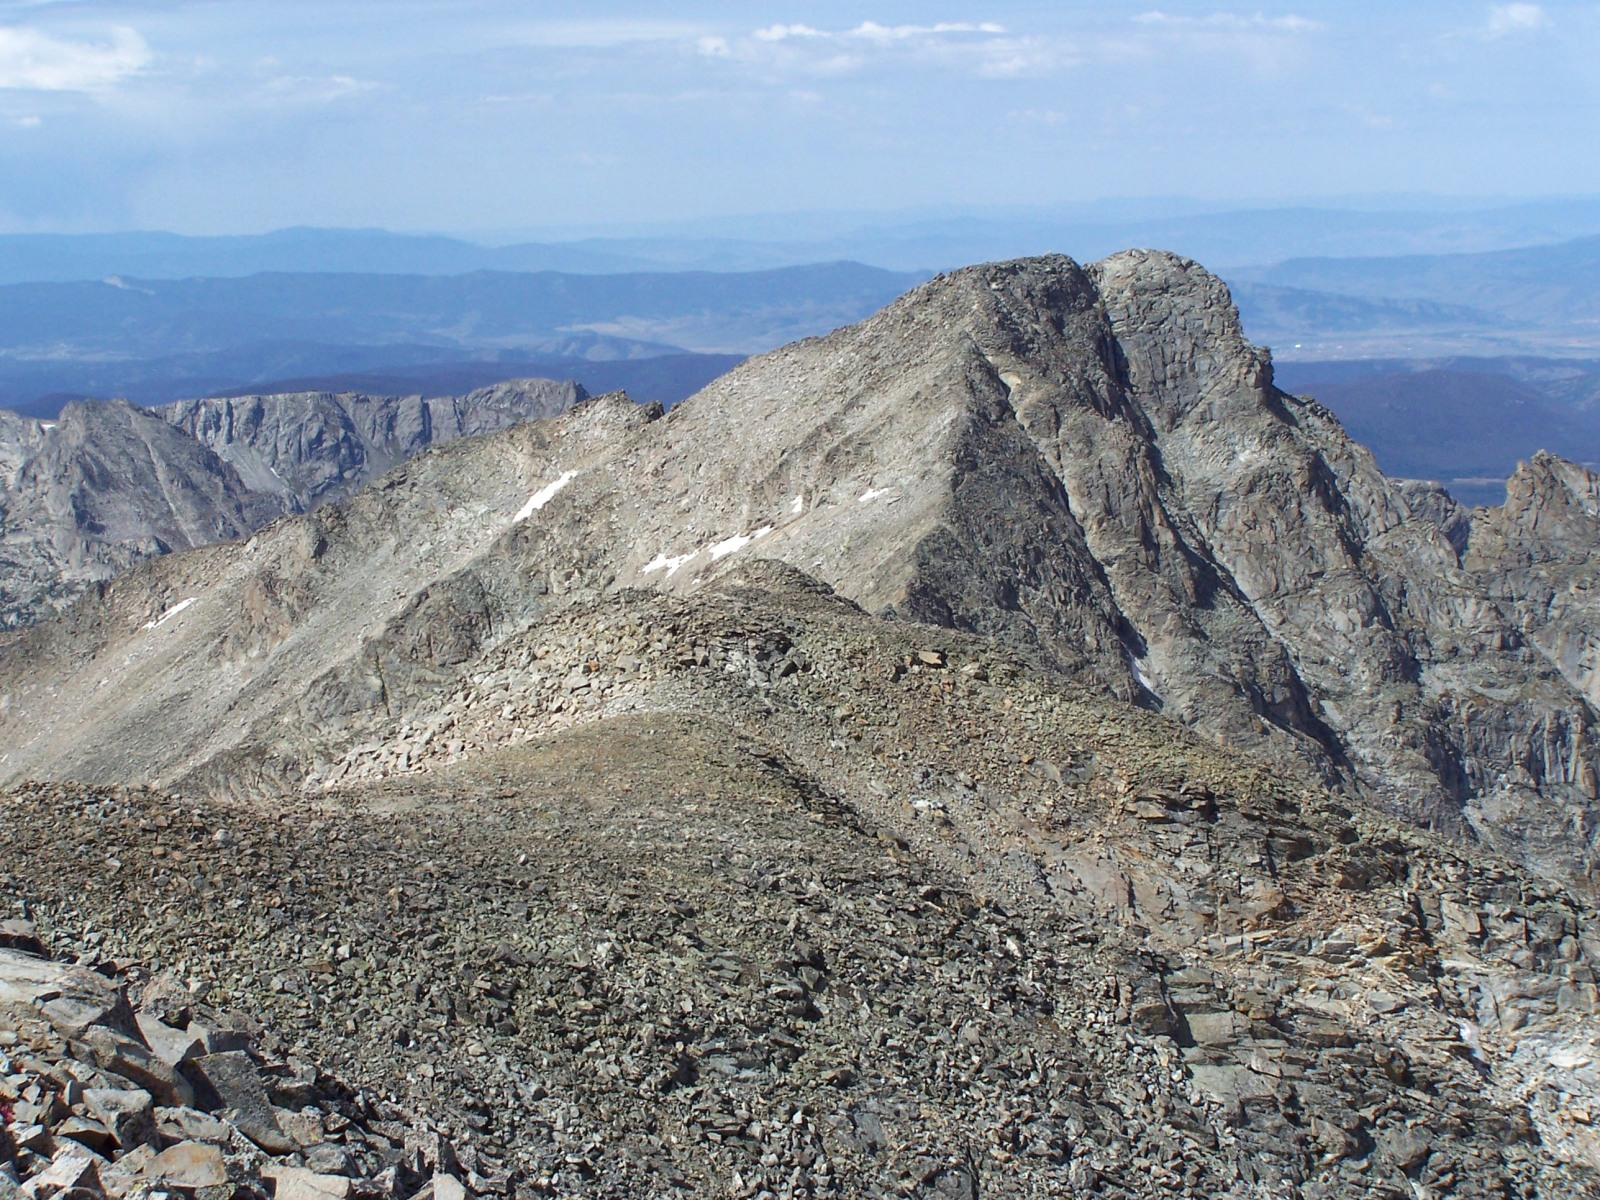 Paiute Peak as seen from the summit of Audubon